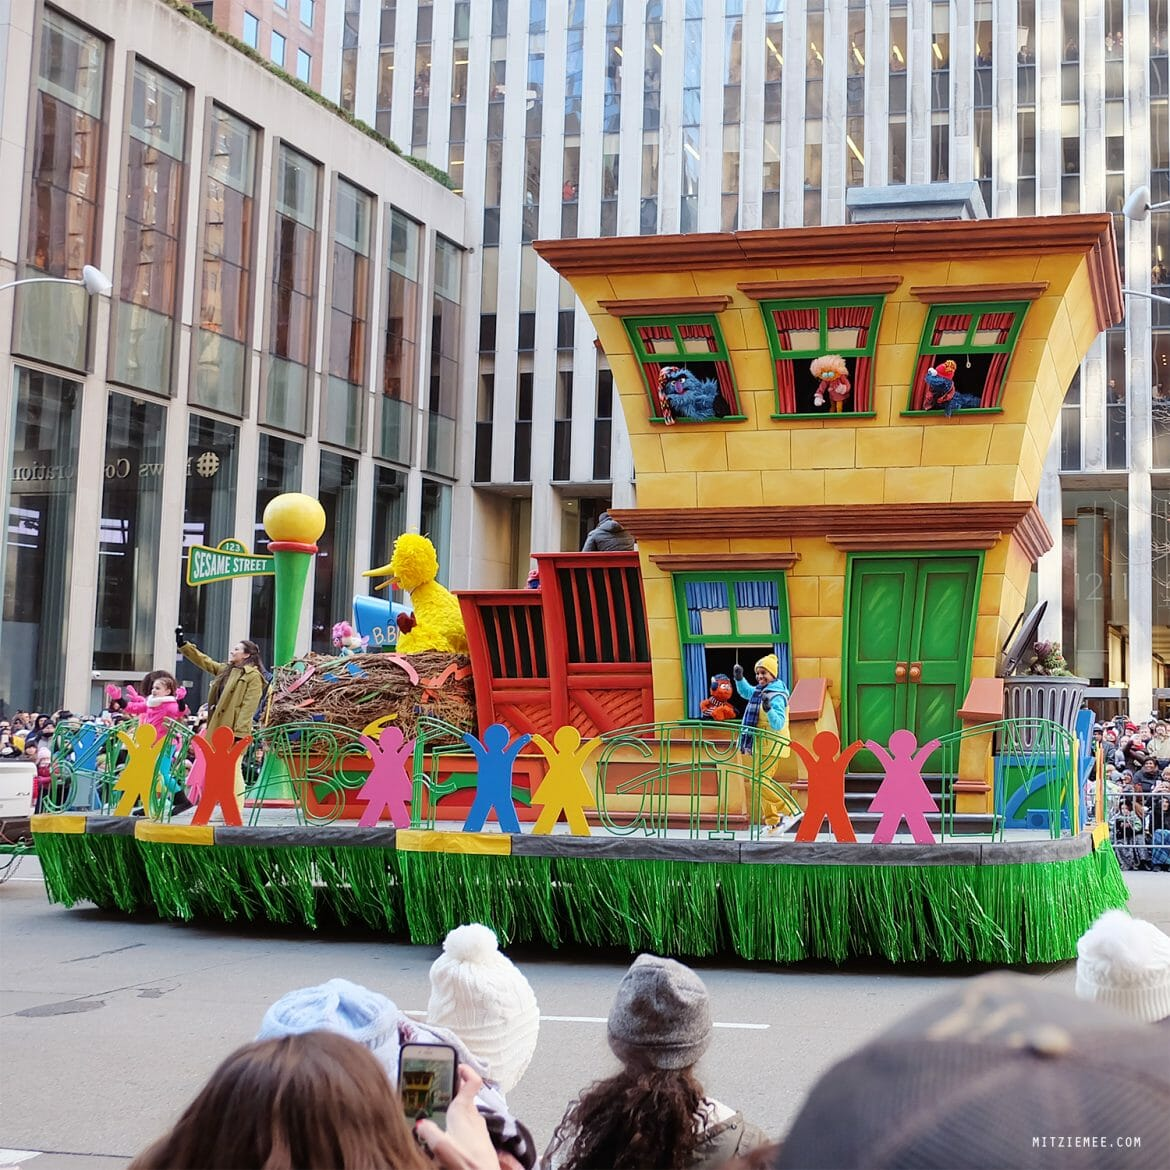 Macy's Thanksgiving Day Parade, New York City